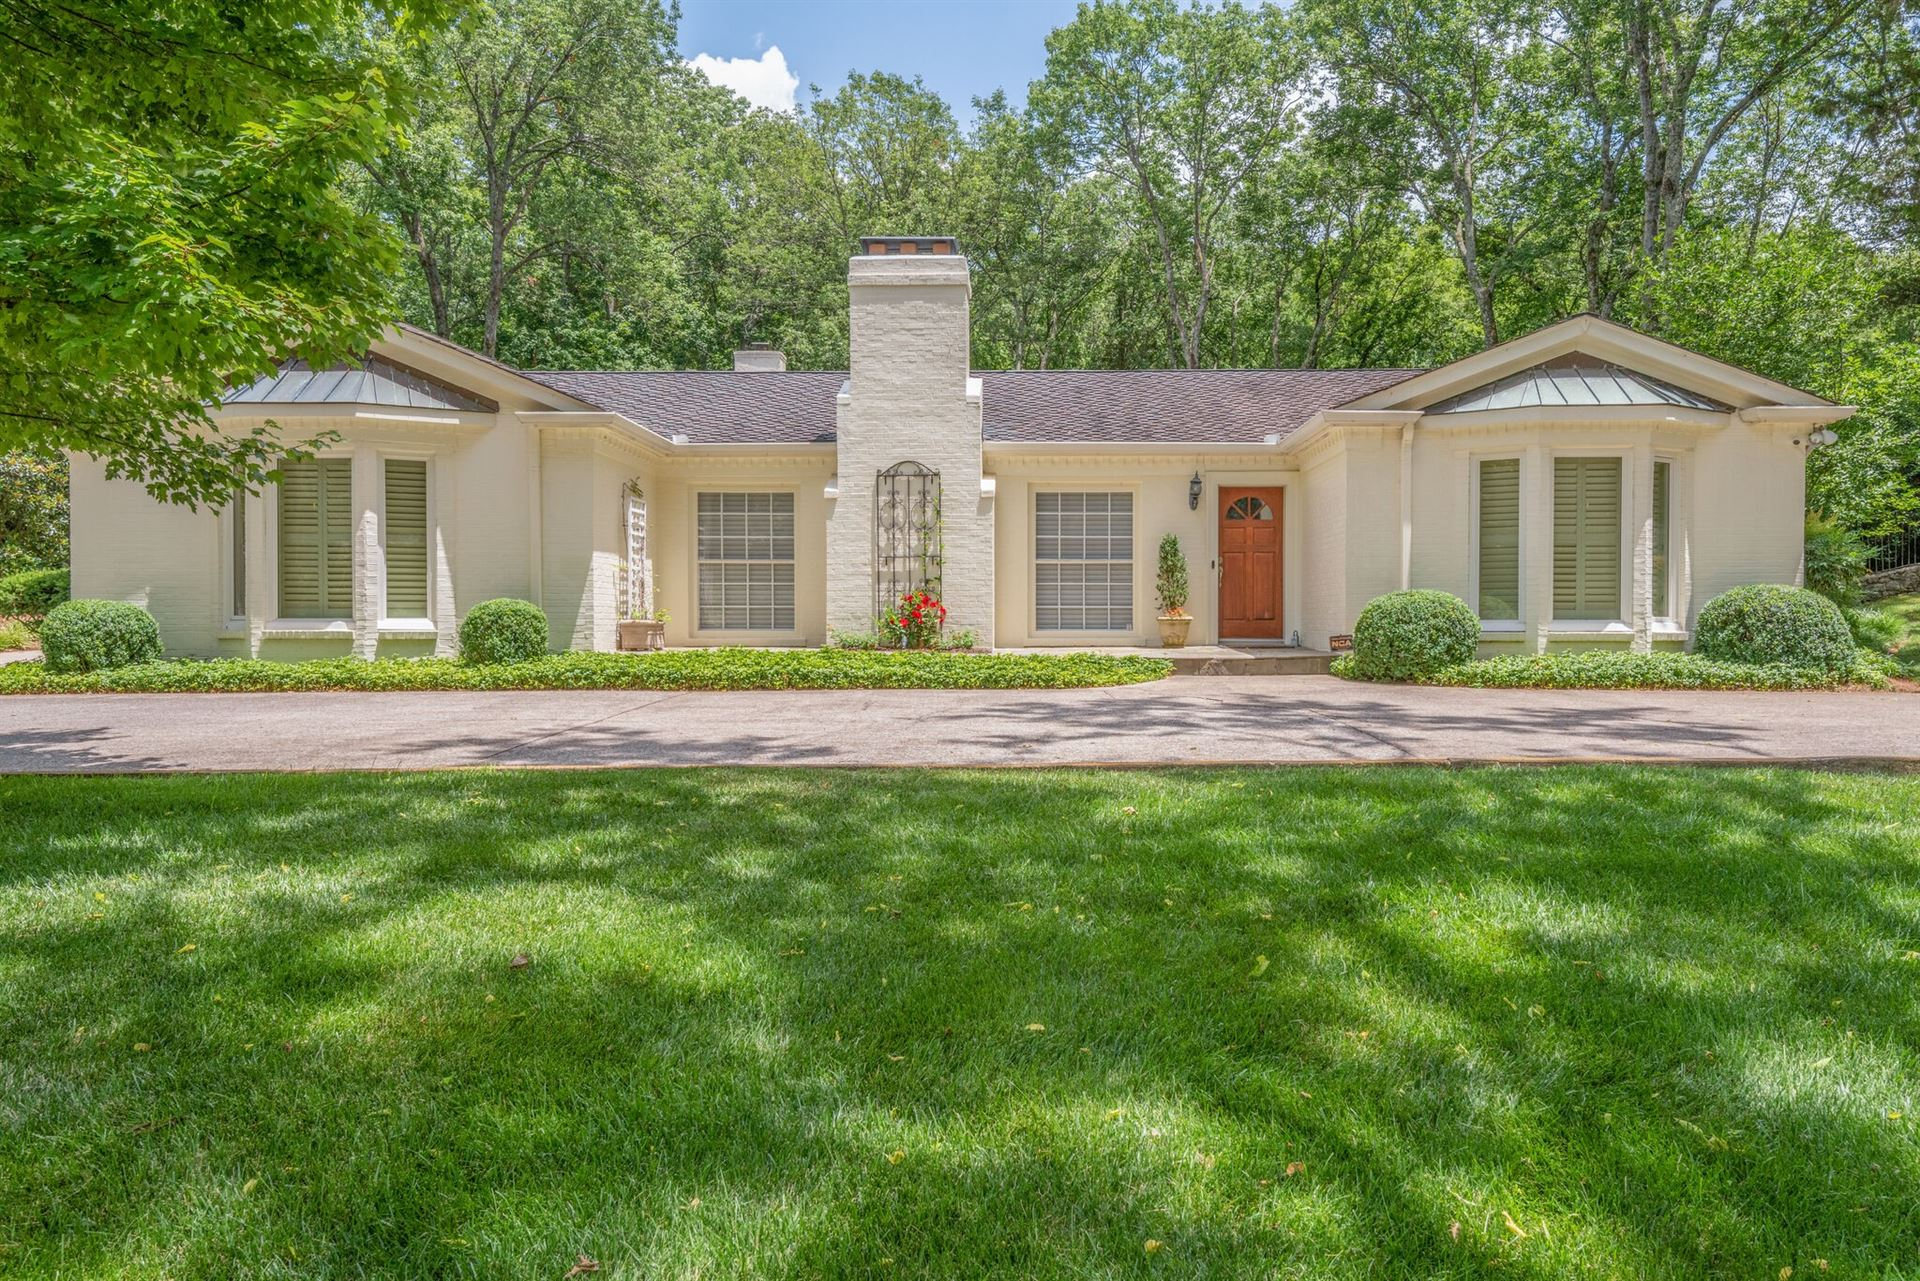 Photo of 606 Lynnwood Blvd, Nashville, TN 37205 (MLS # 2151007)